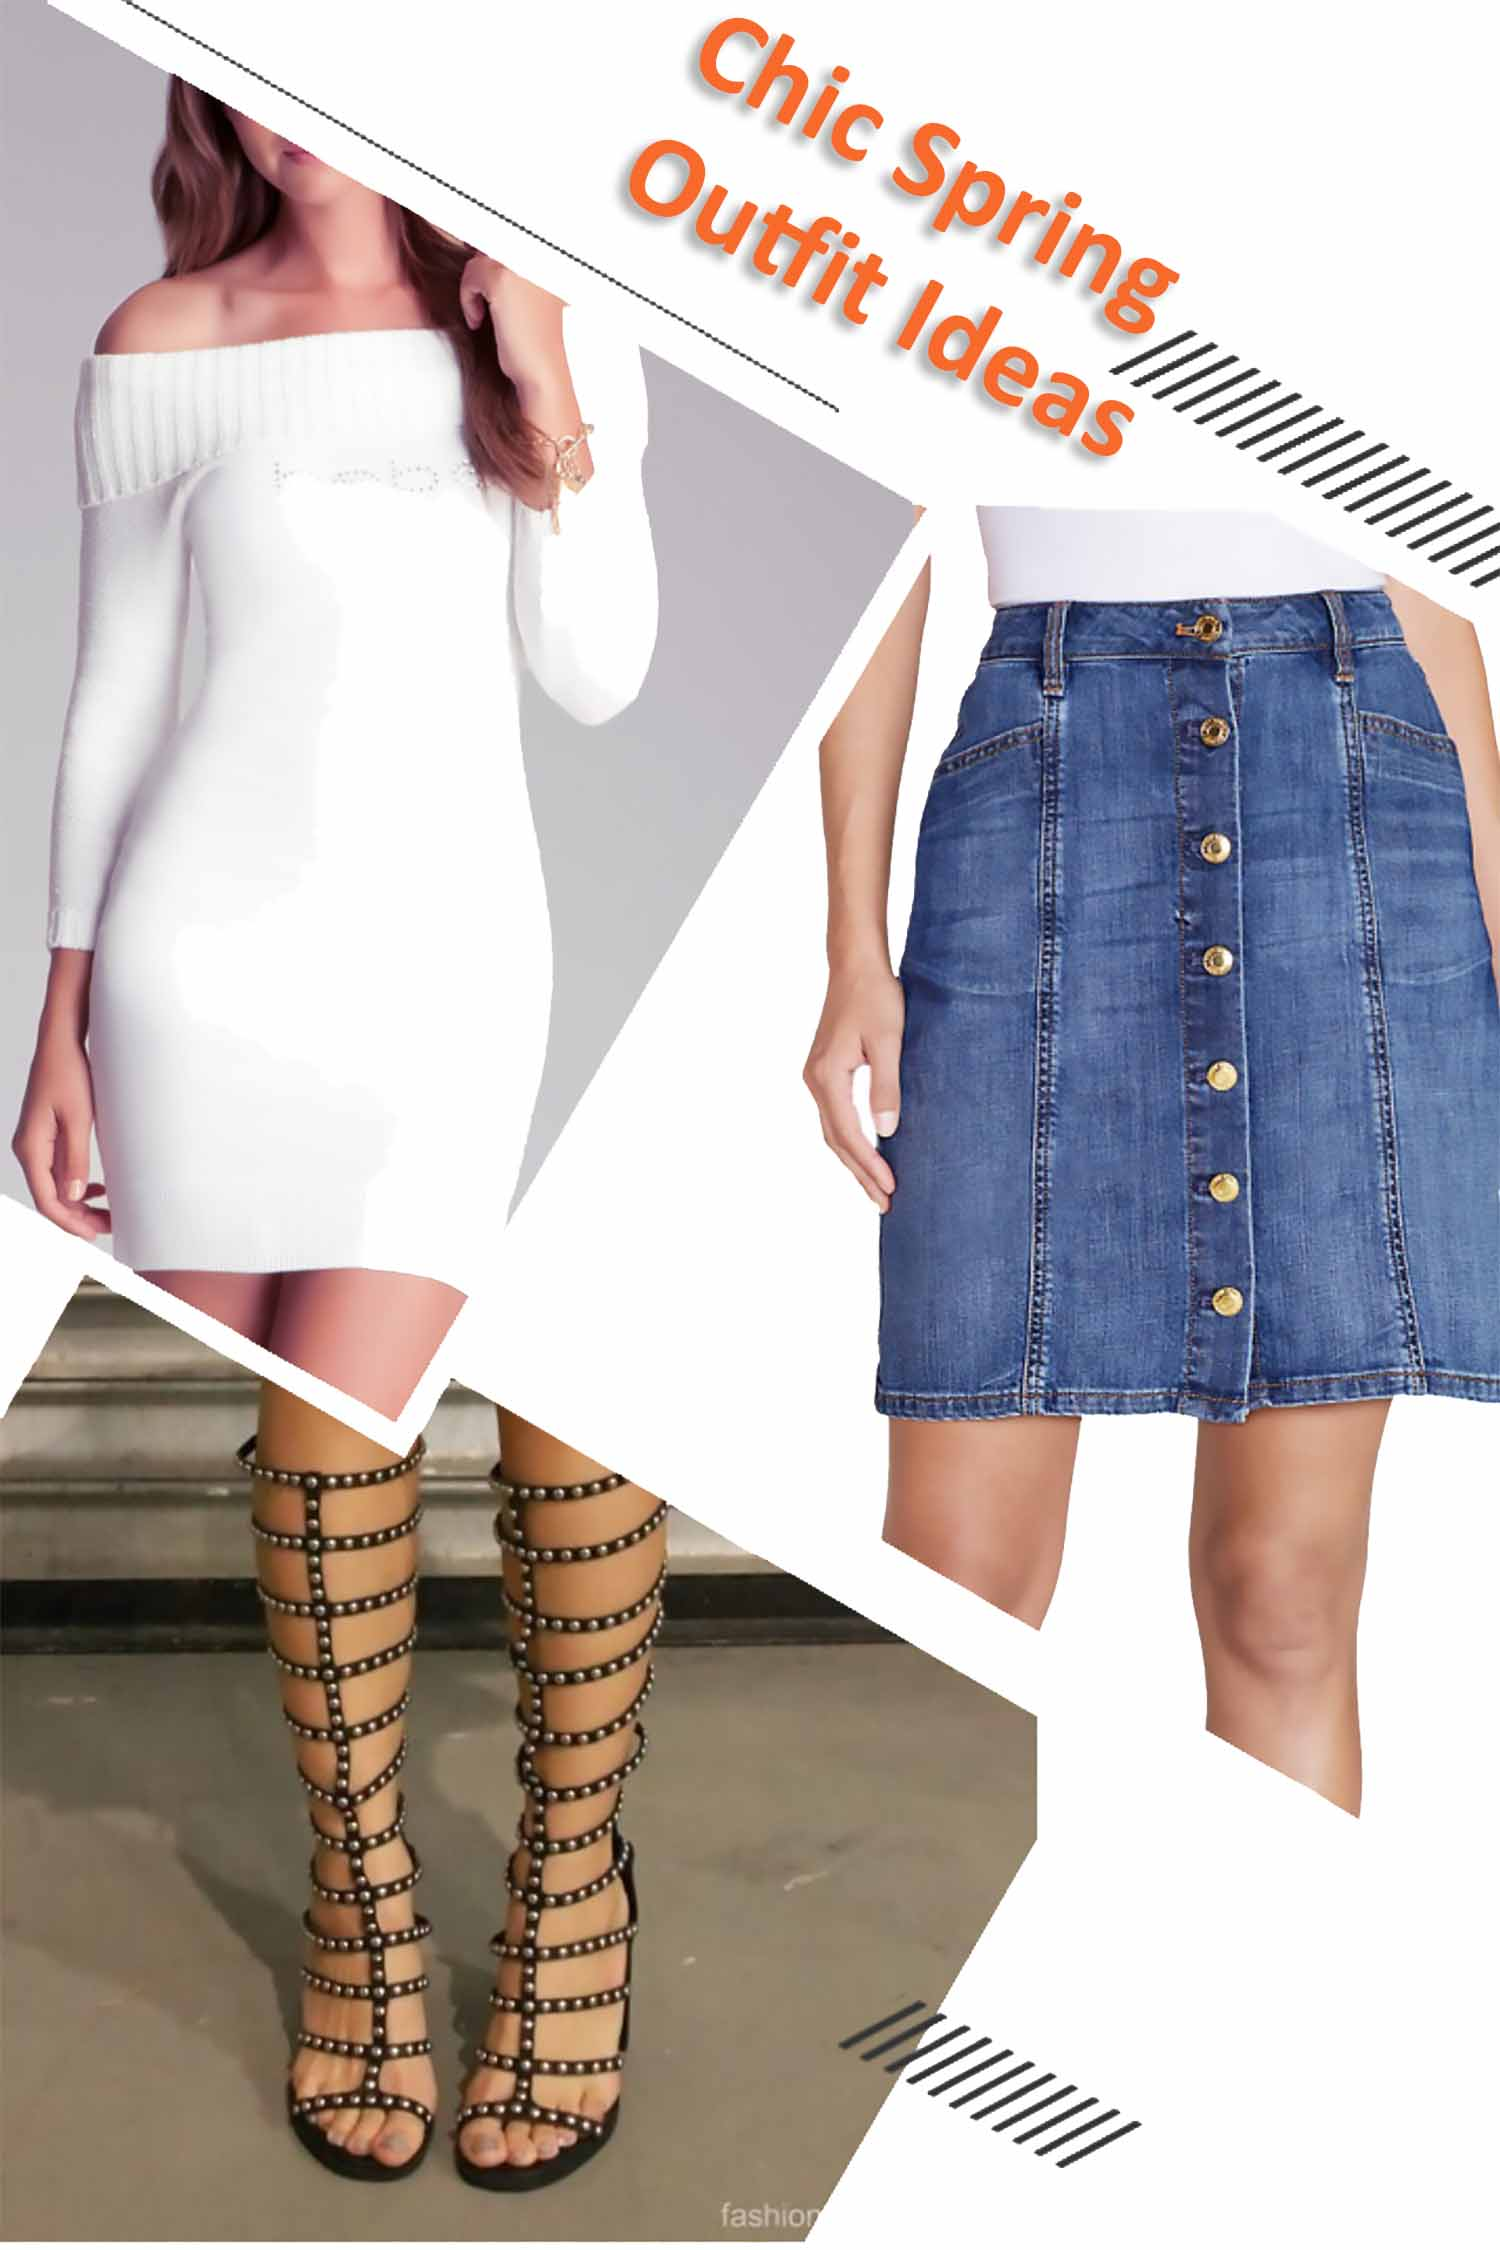 Chic Skirt Outfit Ideas